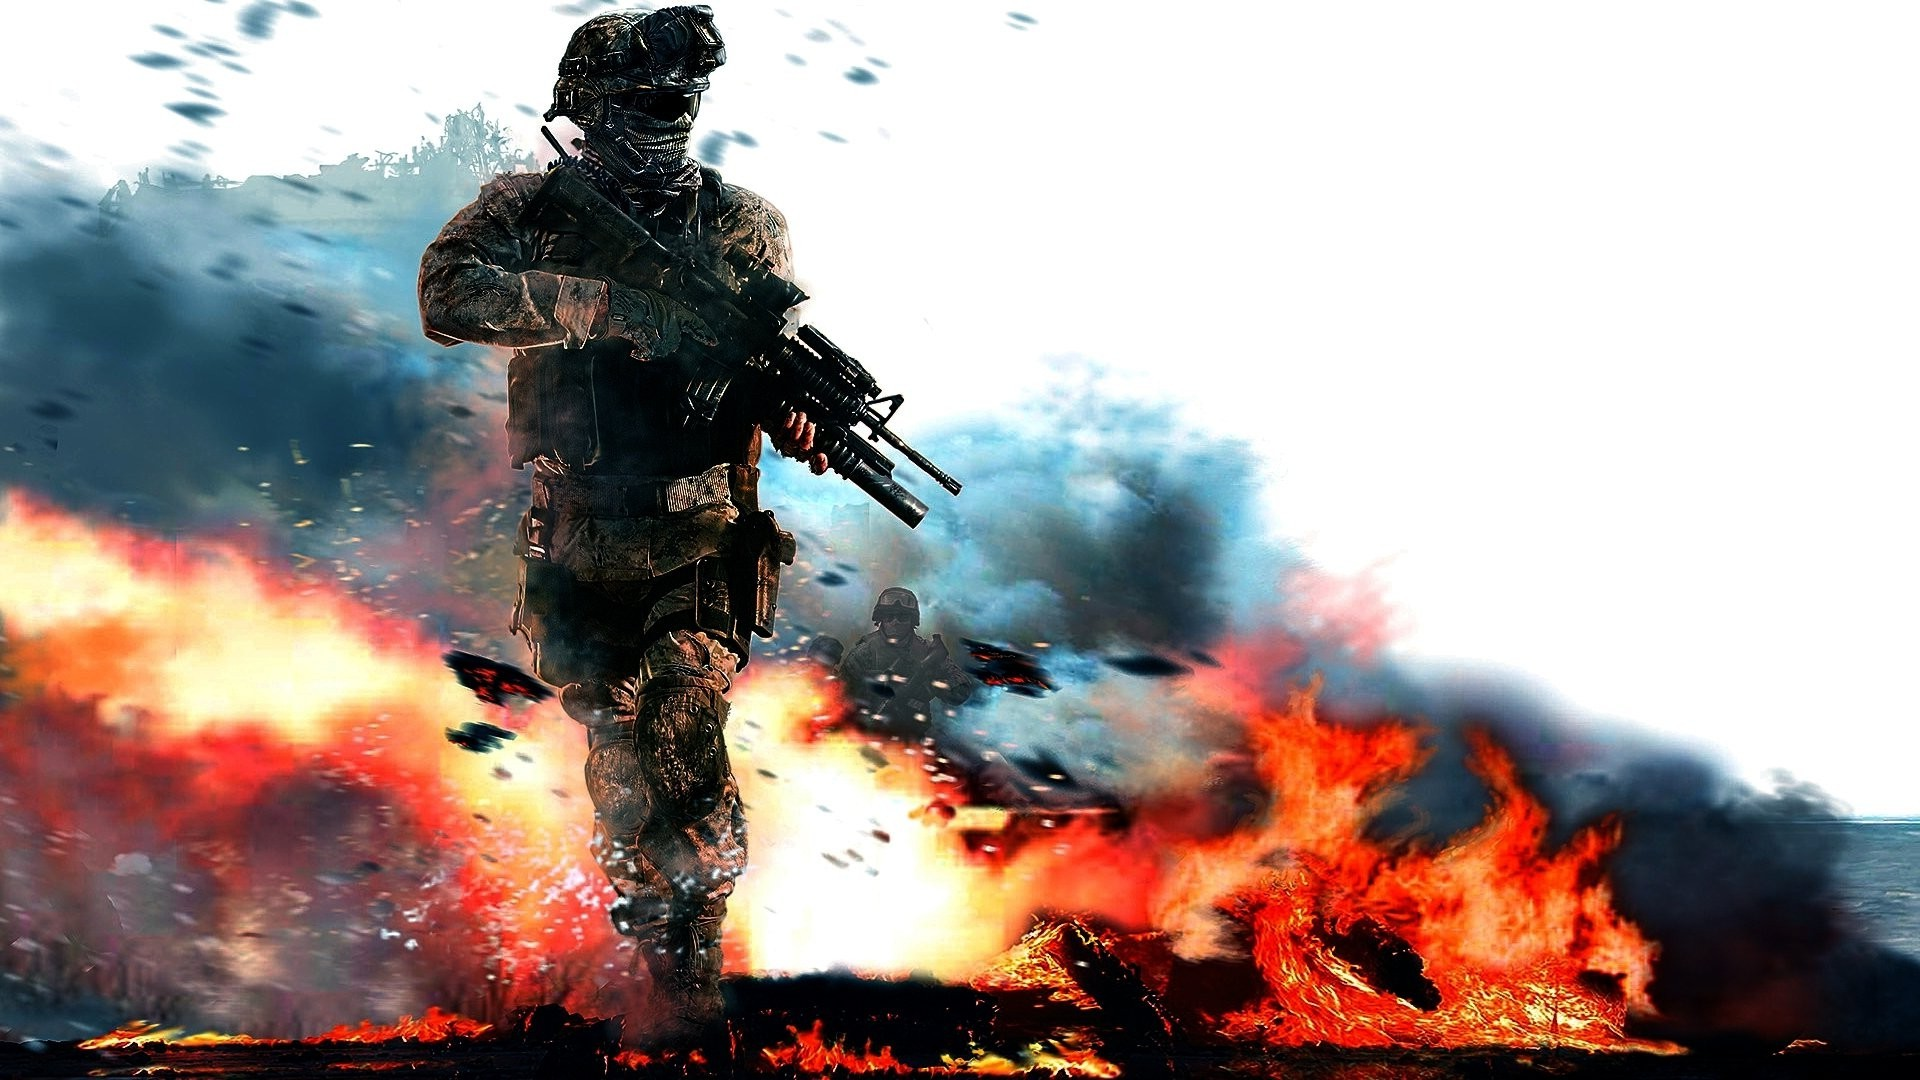 War wallpapers hd 73 images - Call of duty world war 2 background ...